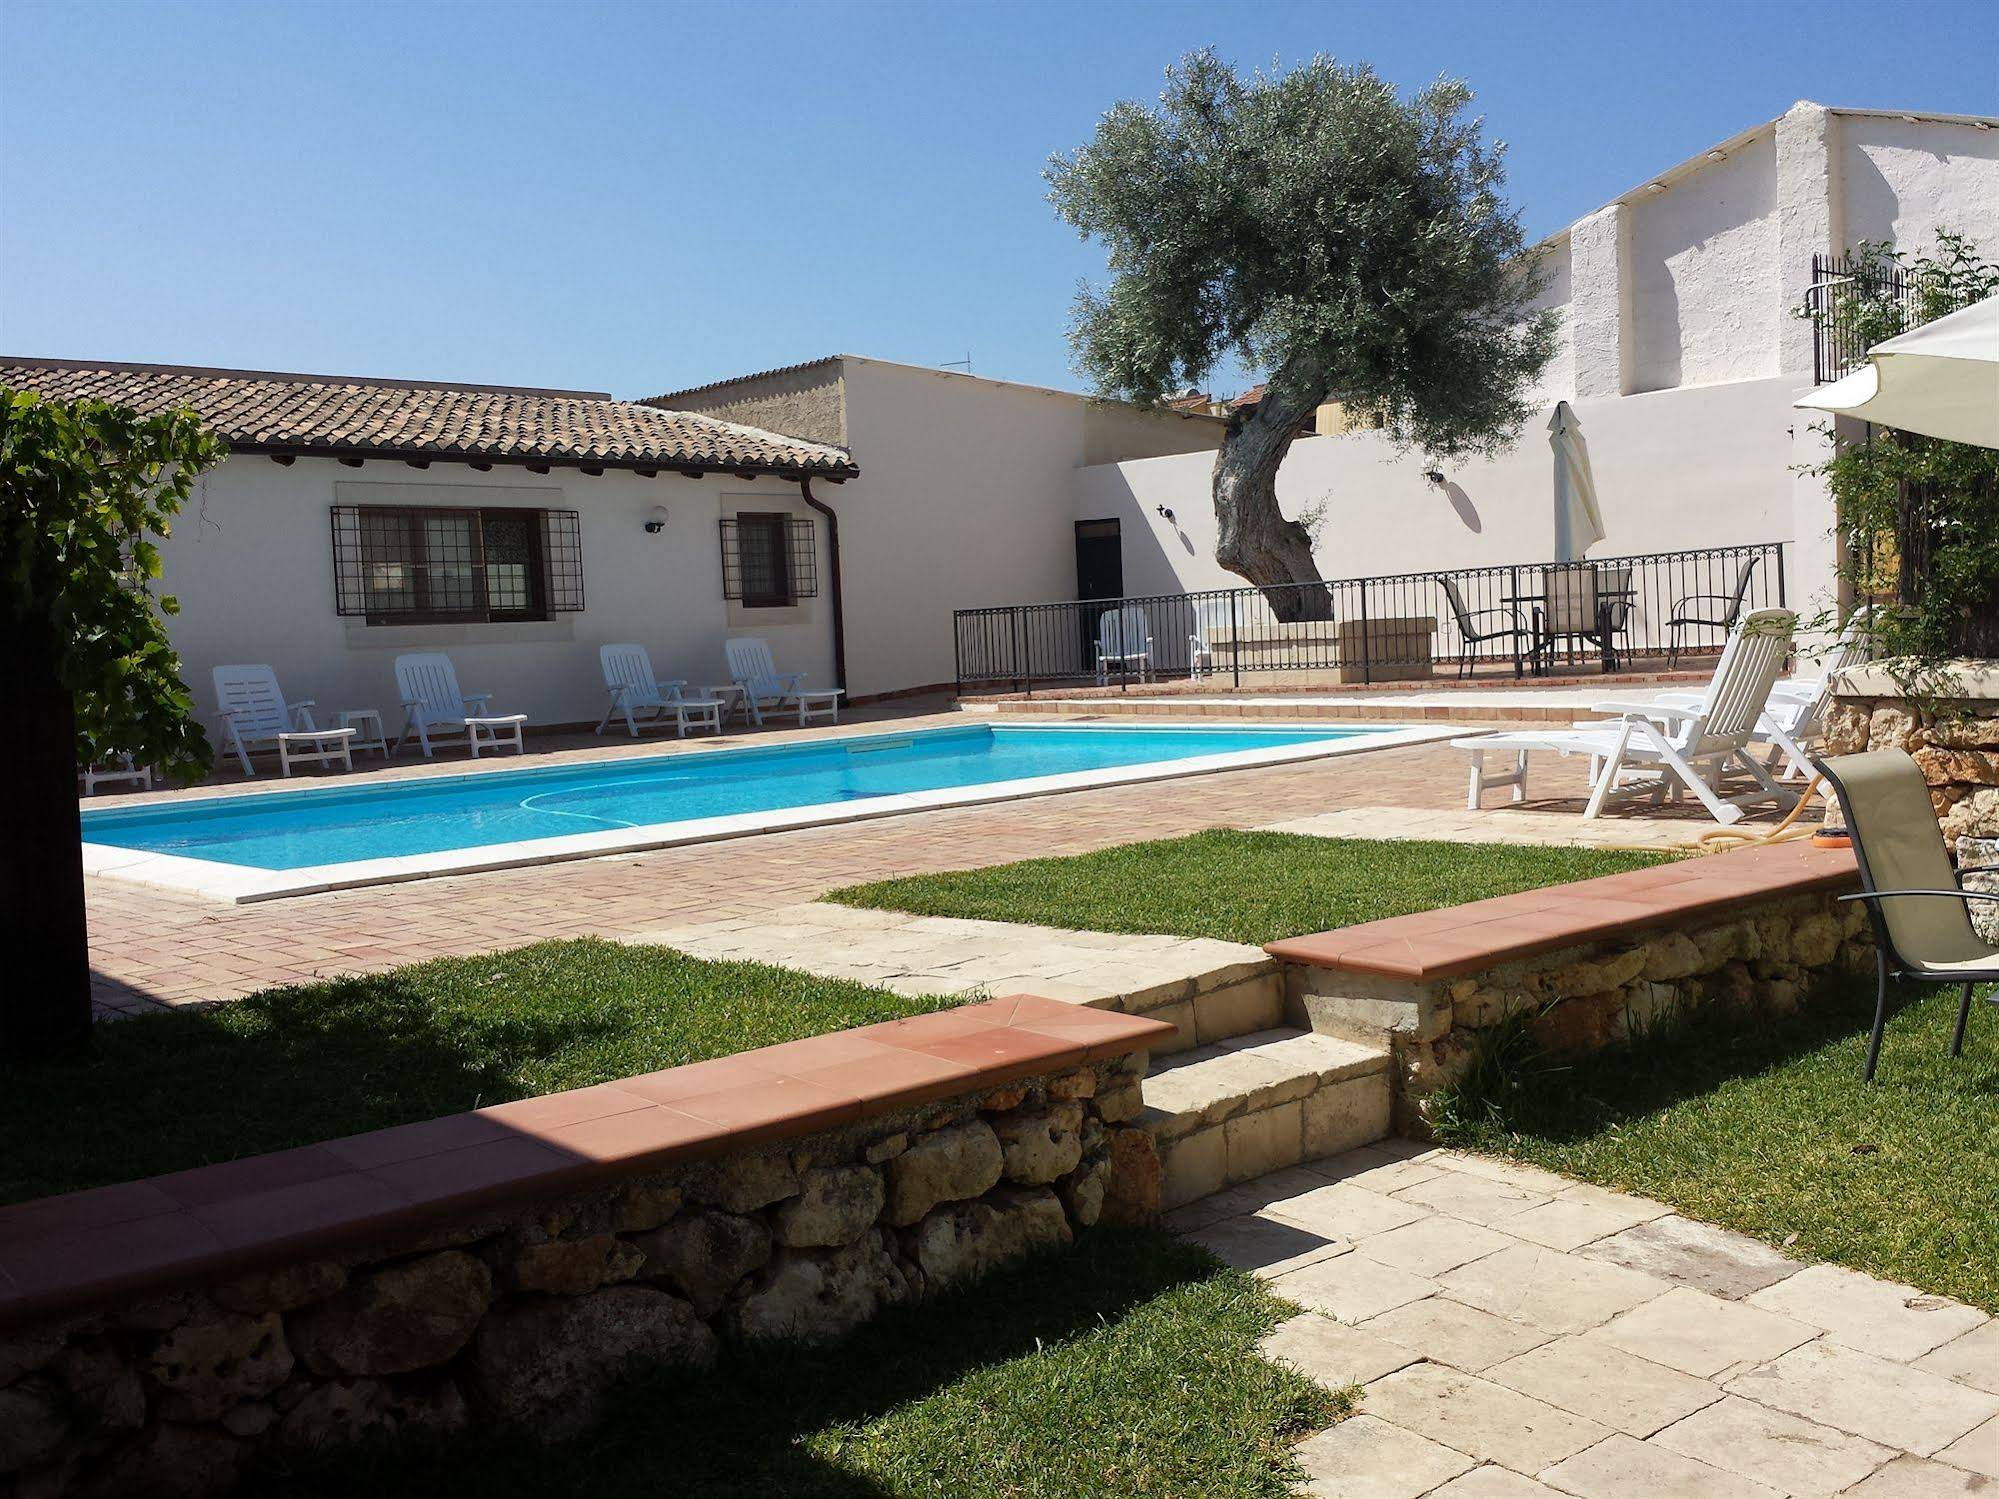 Le Residenze Di Archimede Foto hotels solarino italy - hotels in solarino - hotels booking